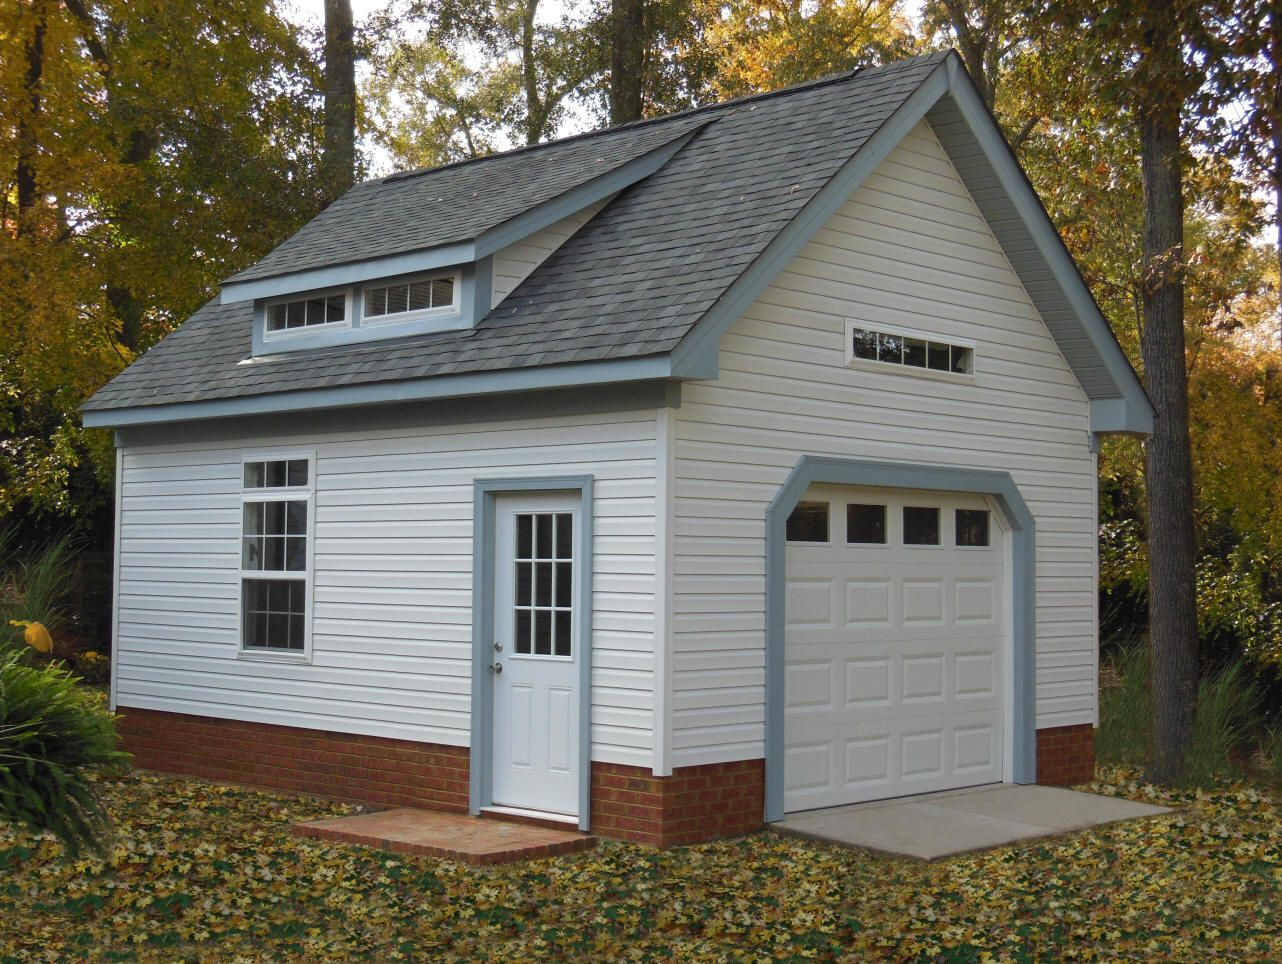 Hardiplank 18x20 Garage Shed In 2019 Garage Detached Garage